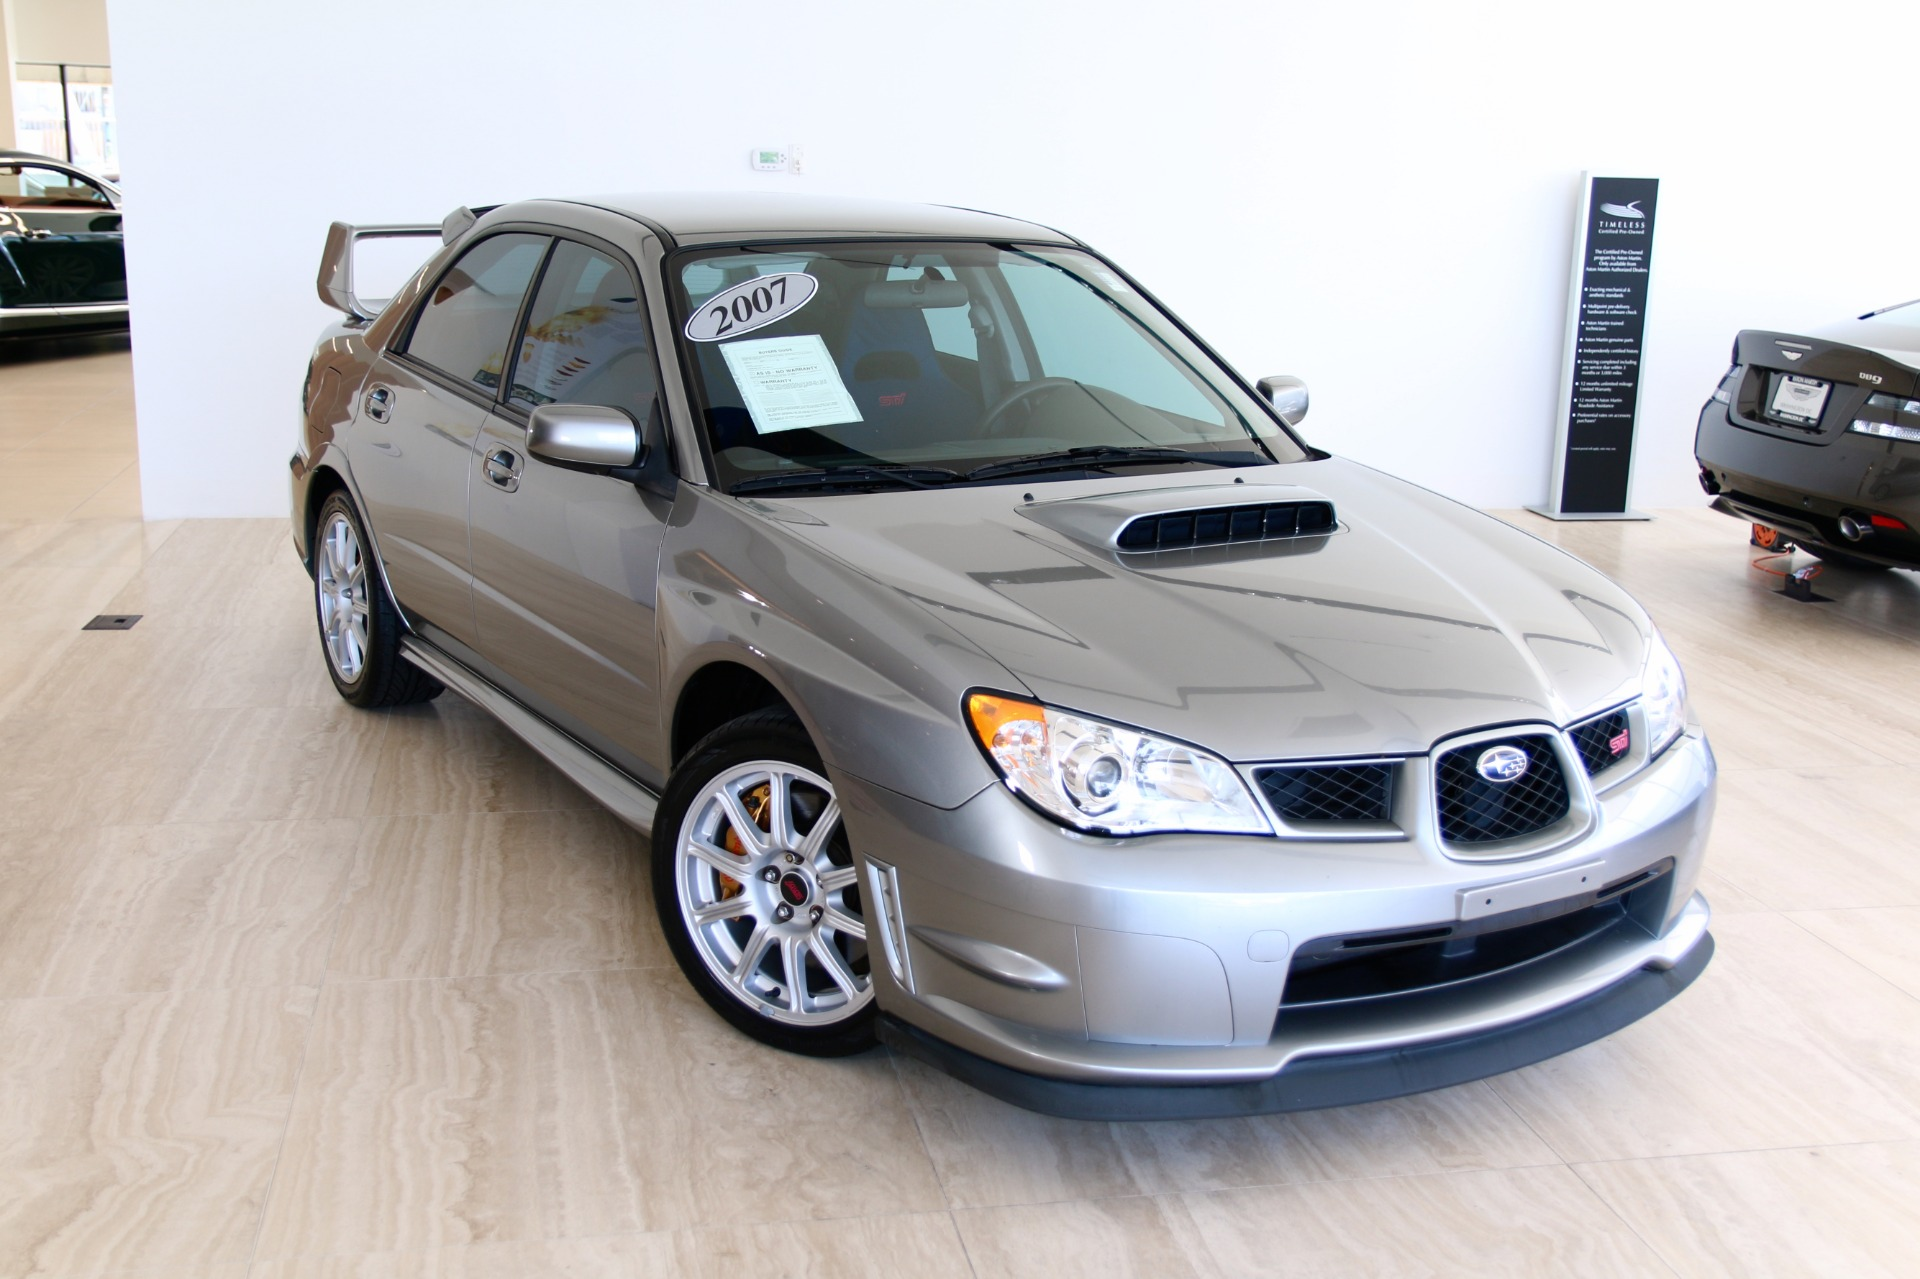 2007 subaru impreza wrx sti stock 7nc016052e for sale near used 2007 subaru impreza wrx sti vienna va vanachro Image collections